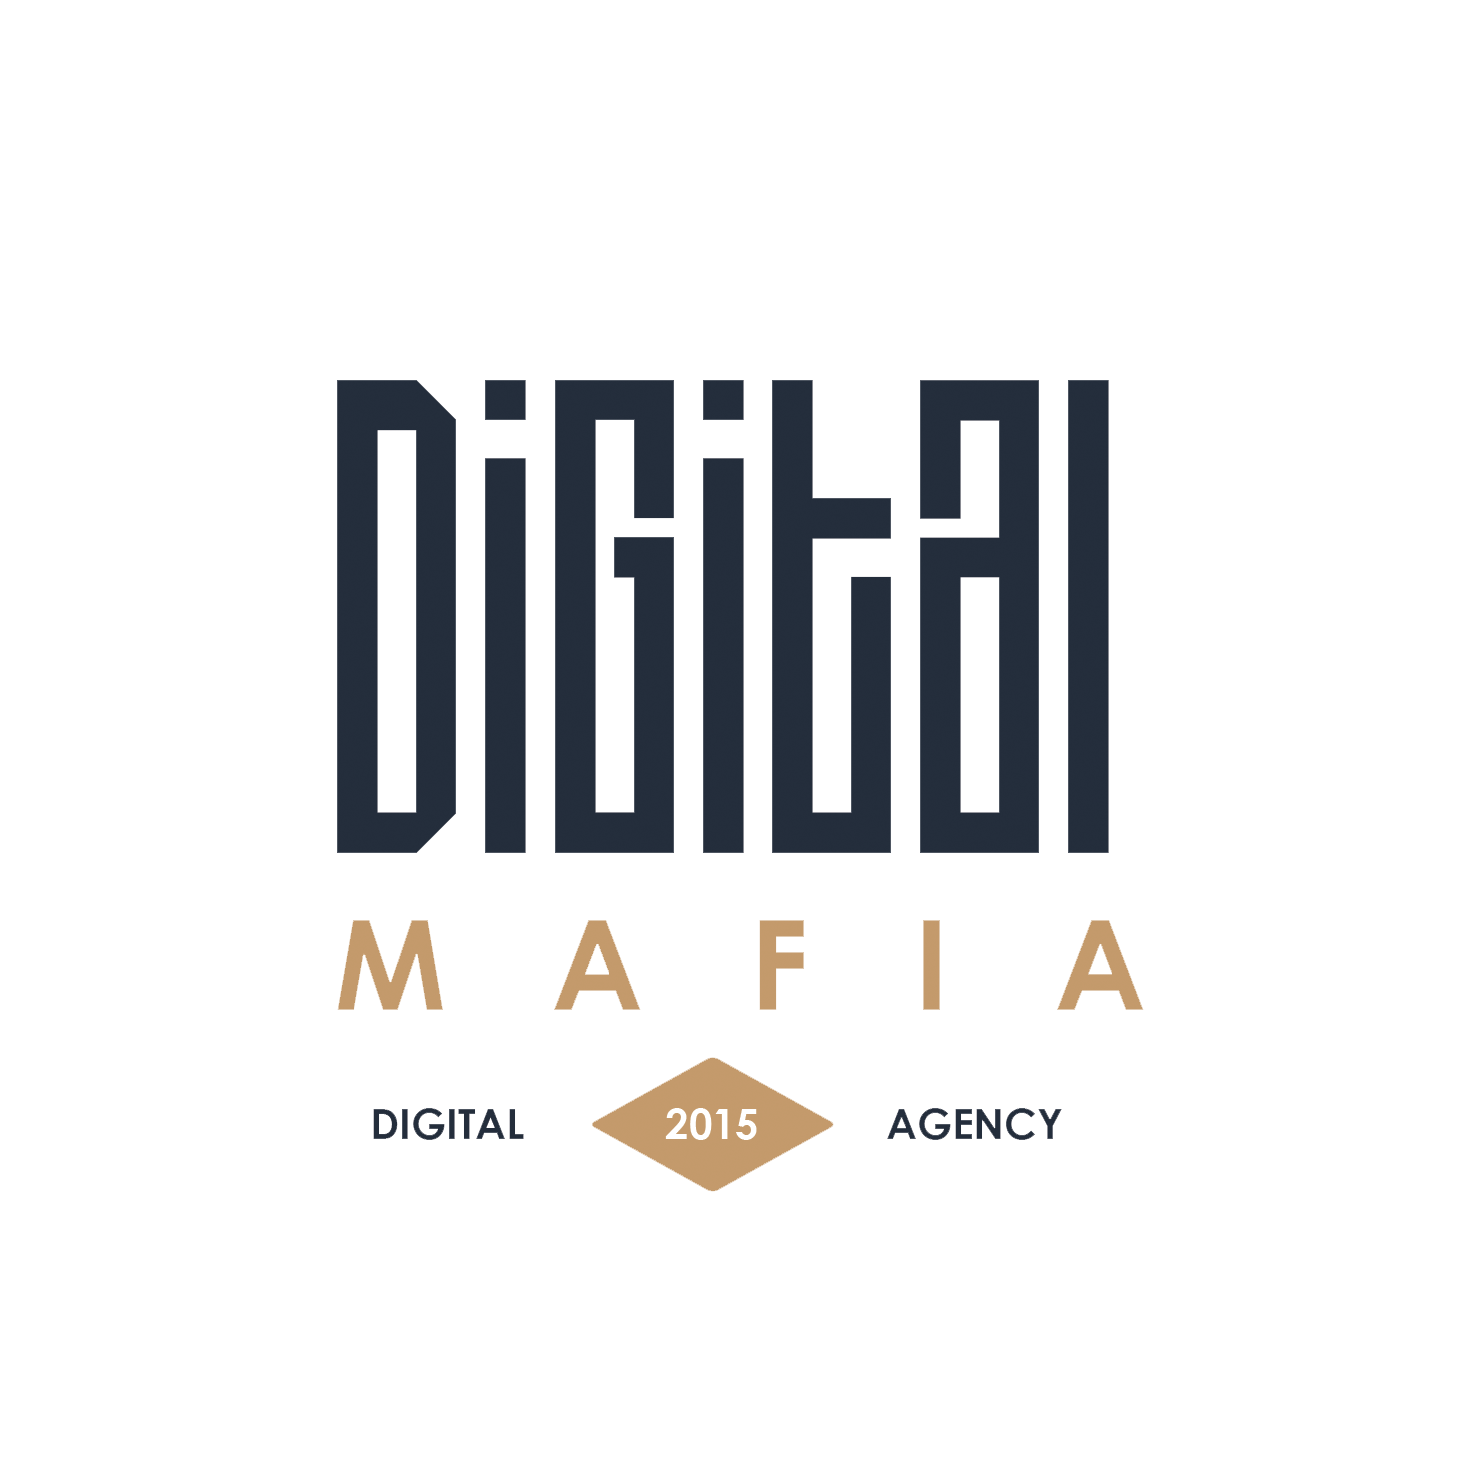 Digital Mafia Agency